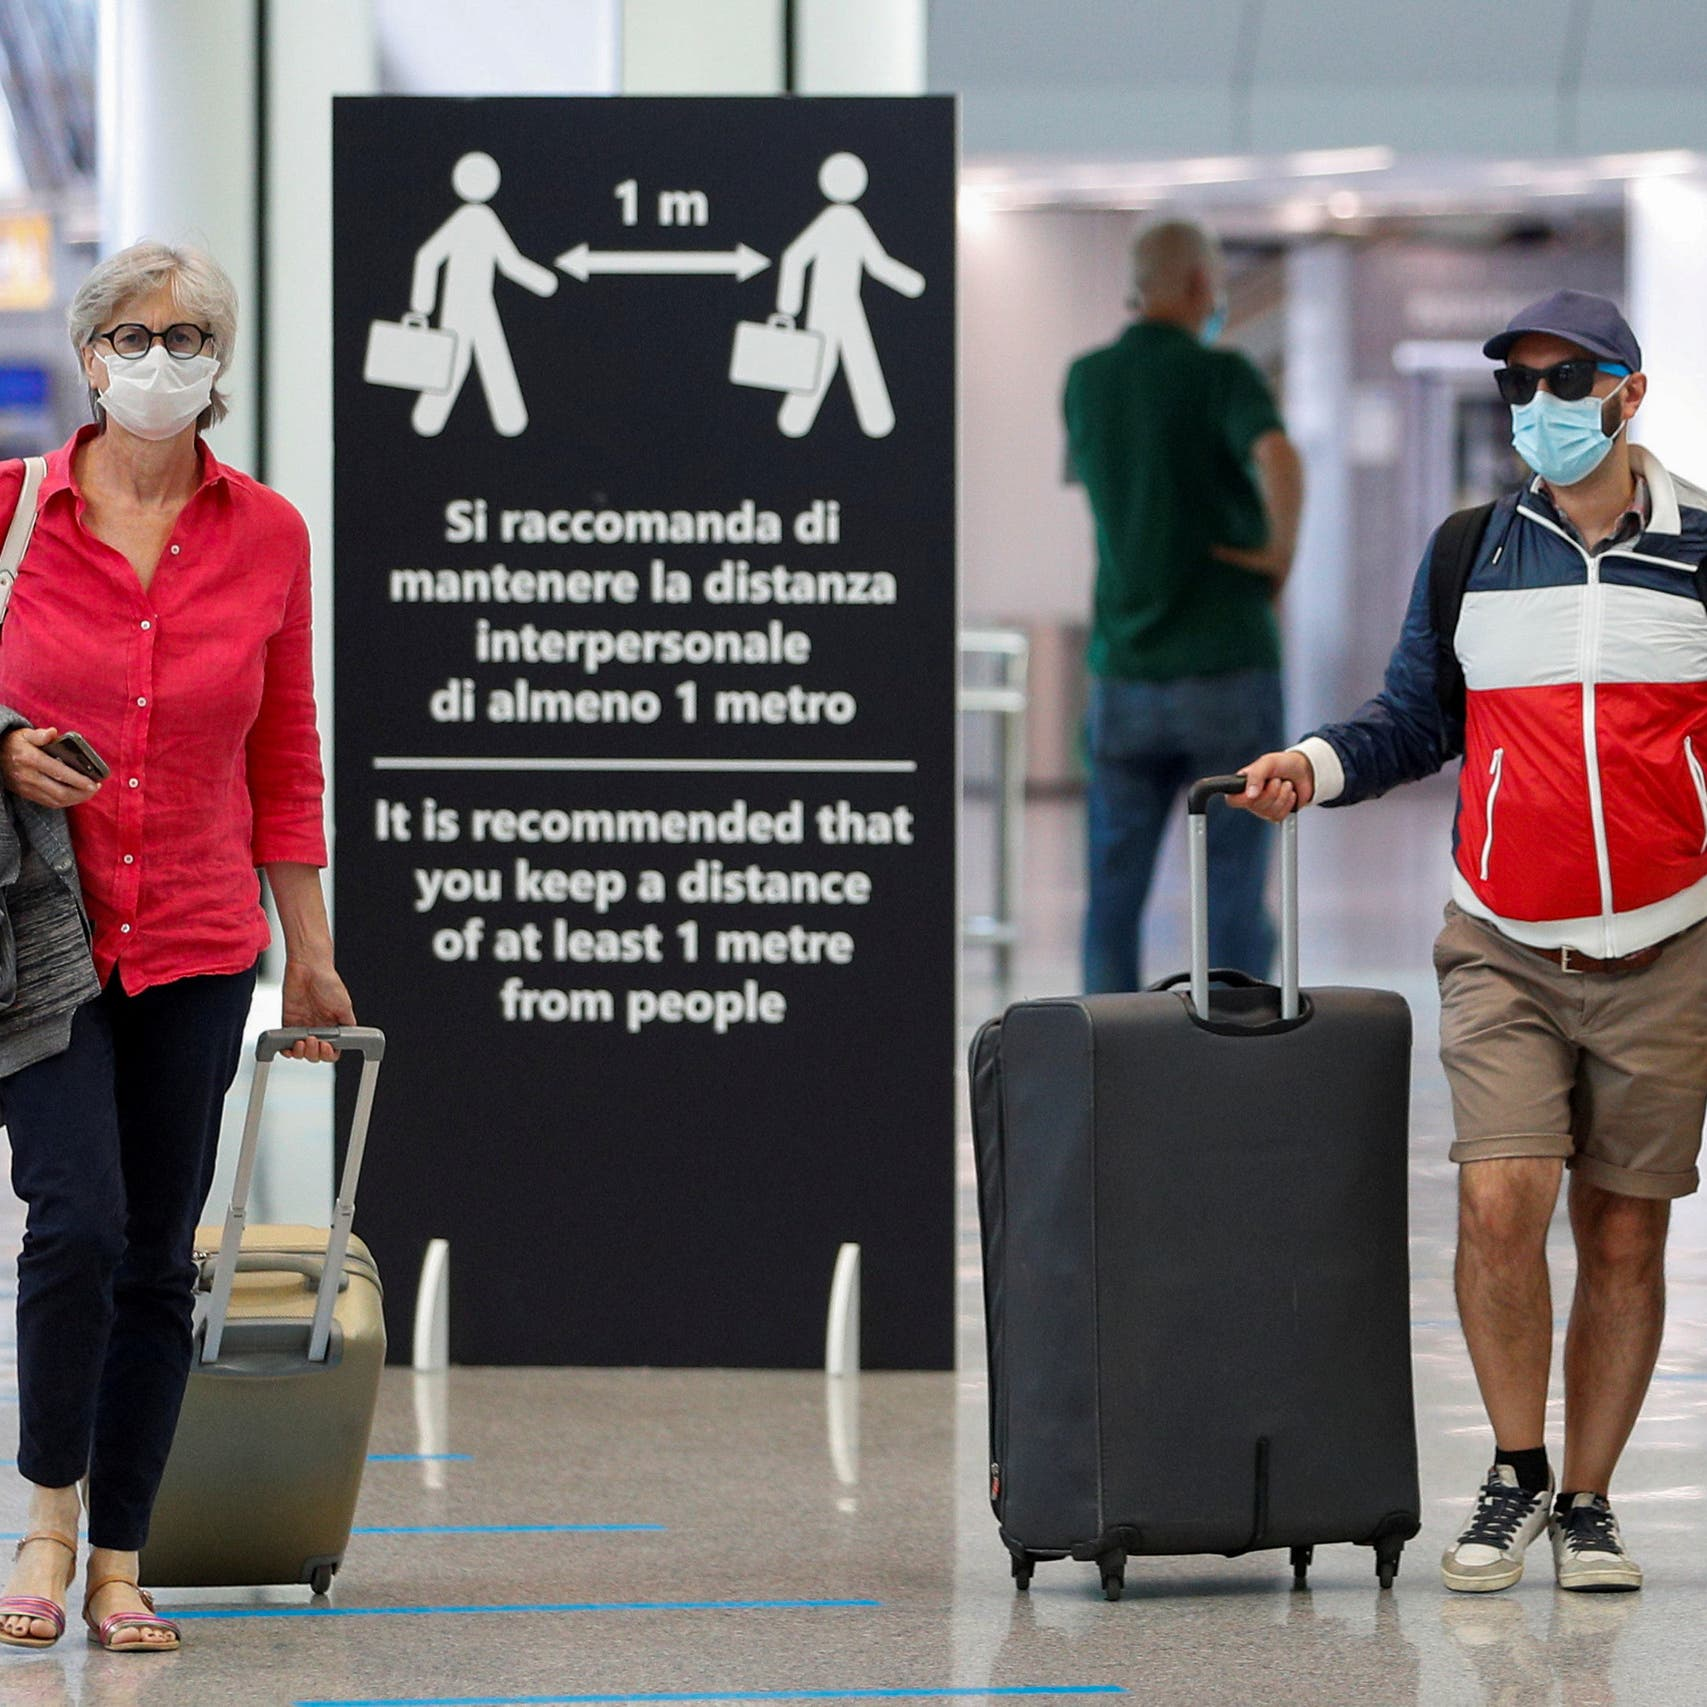 Authorized vaccines are effective, but travel still unsafe: WHO's Europe chief